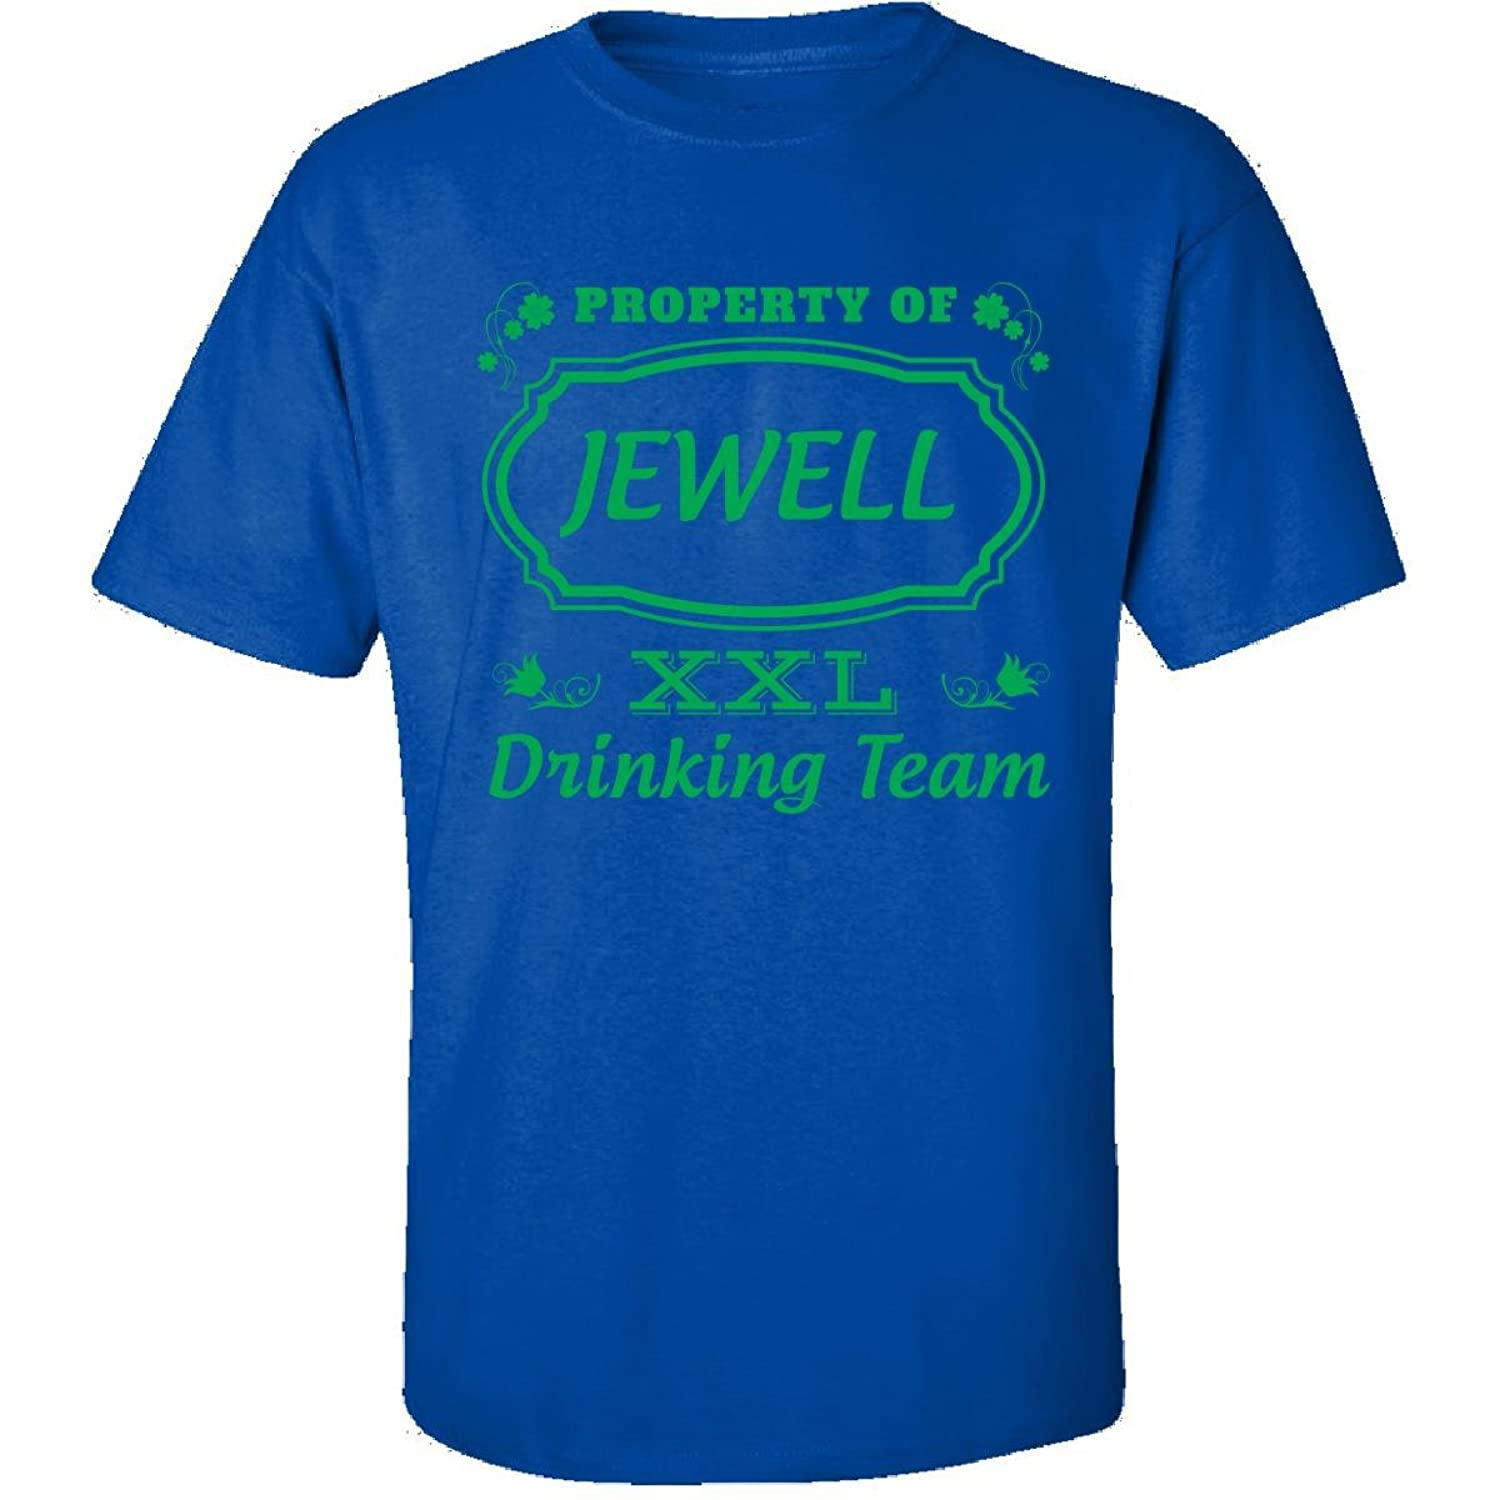 Property Of Jewell St Patrick Day Beer Drinking Team - Adult Shirt